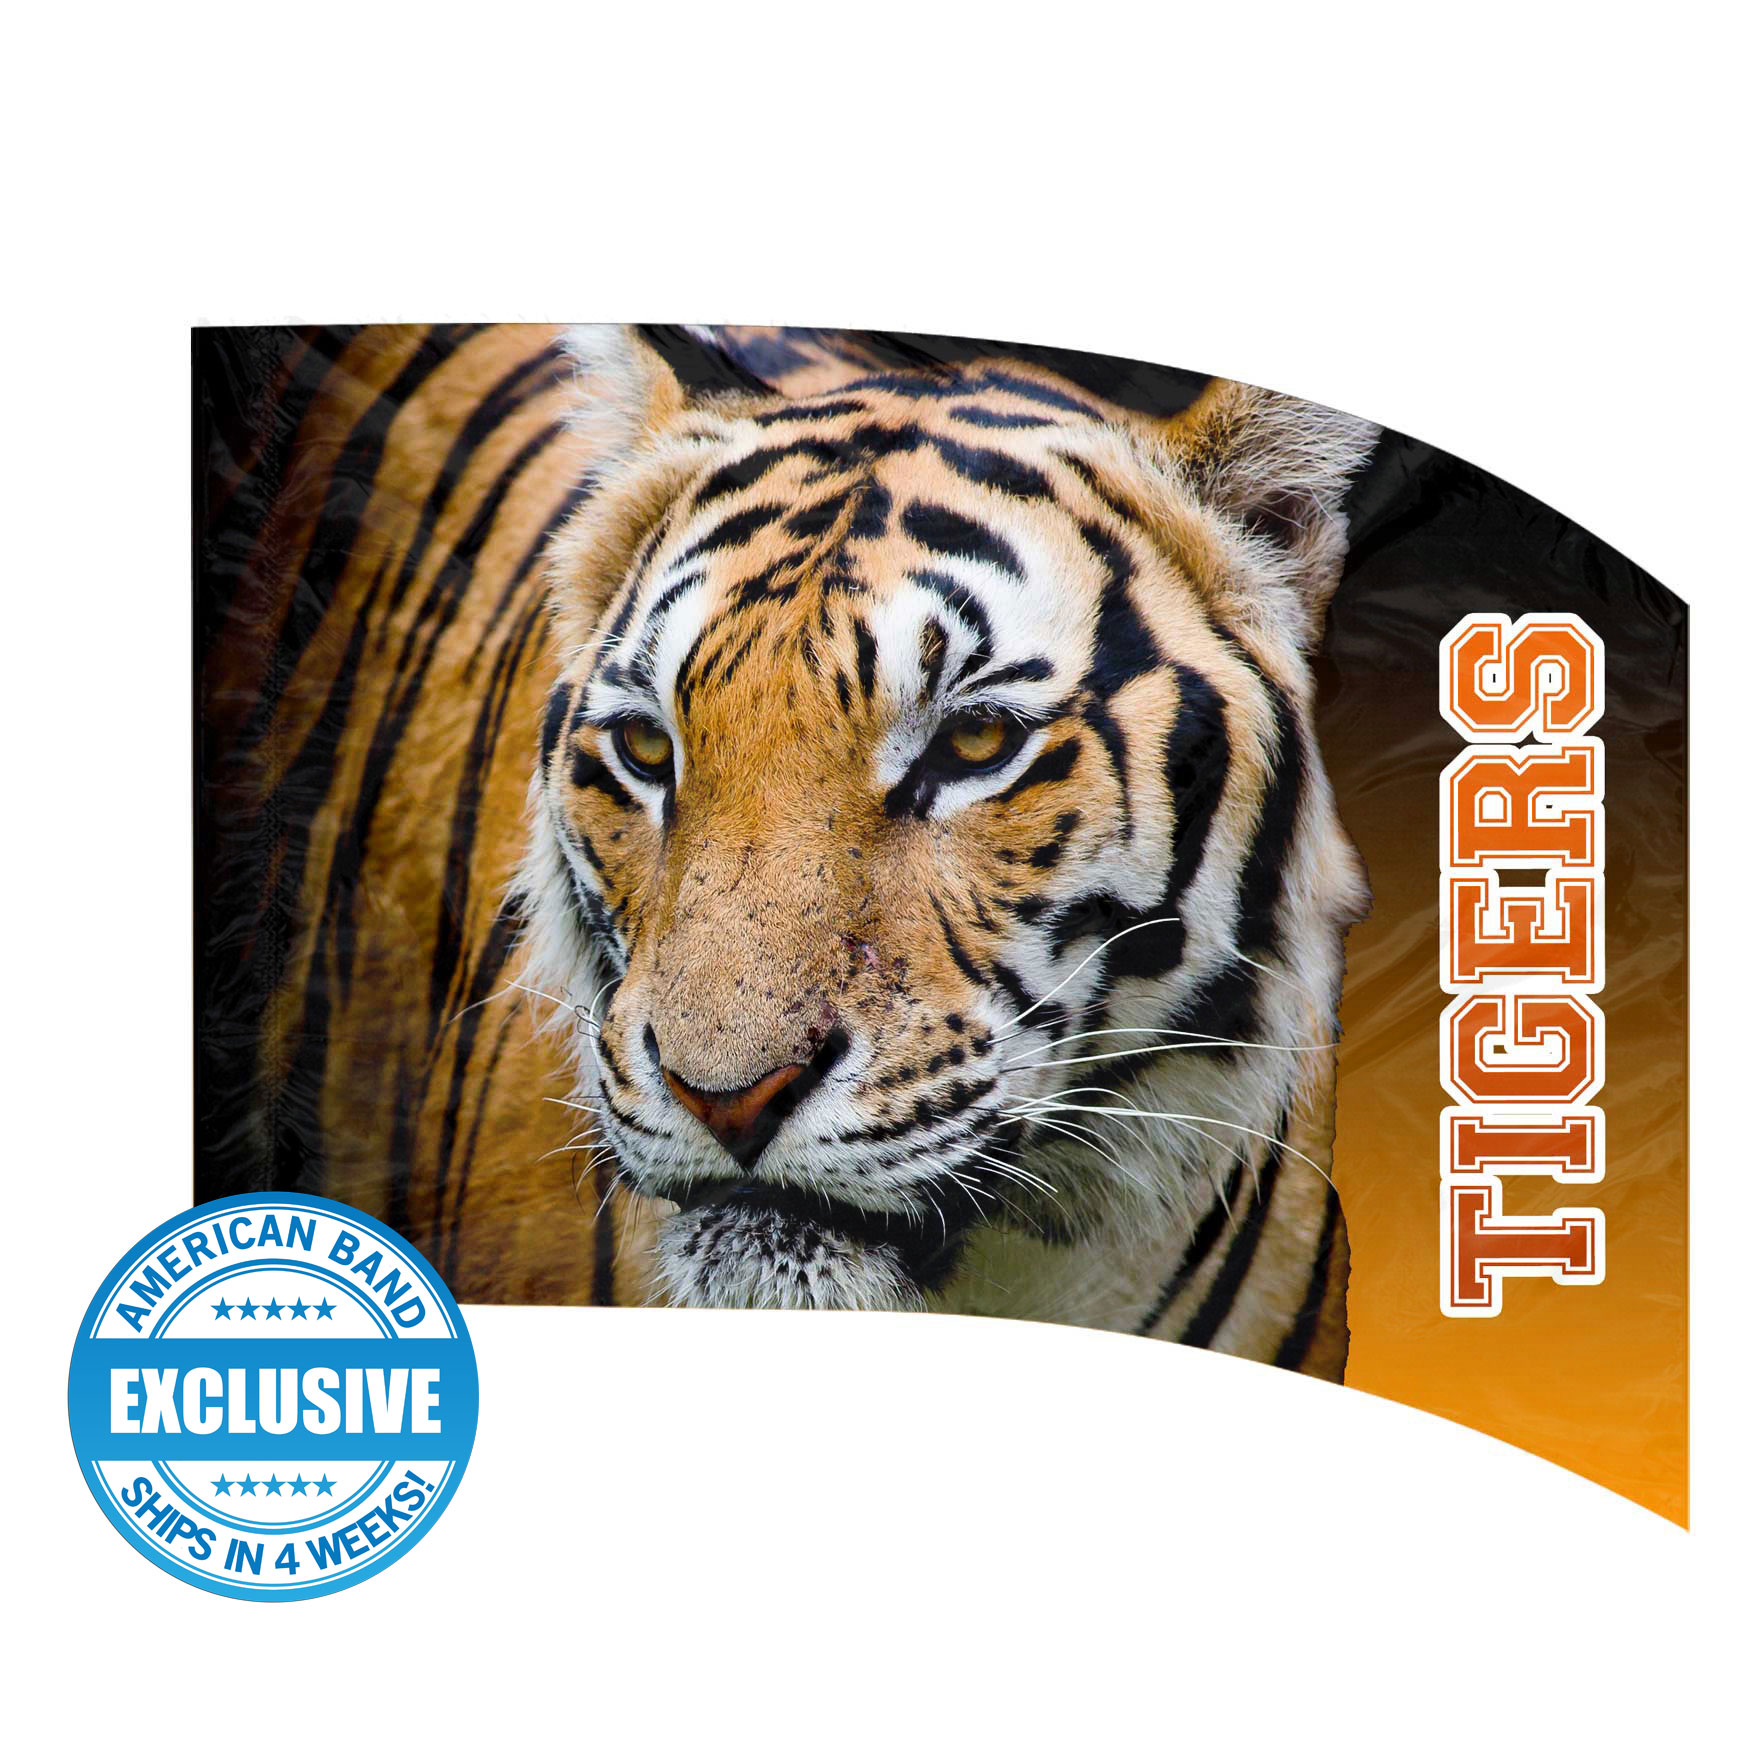 Made-to-Order Digital Mascot Flags - Tiger